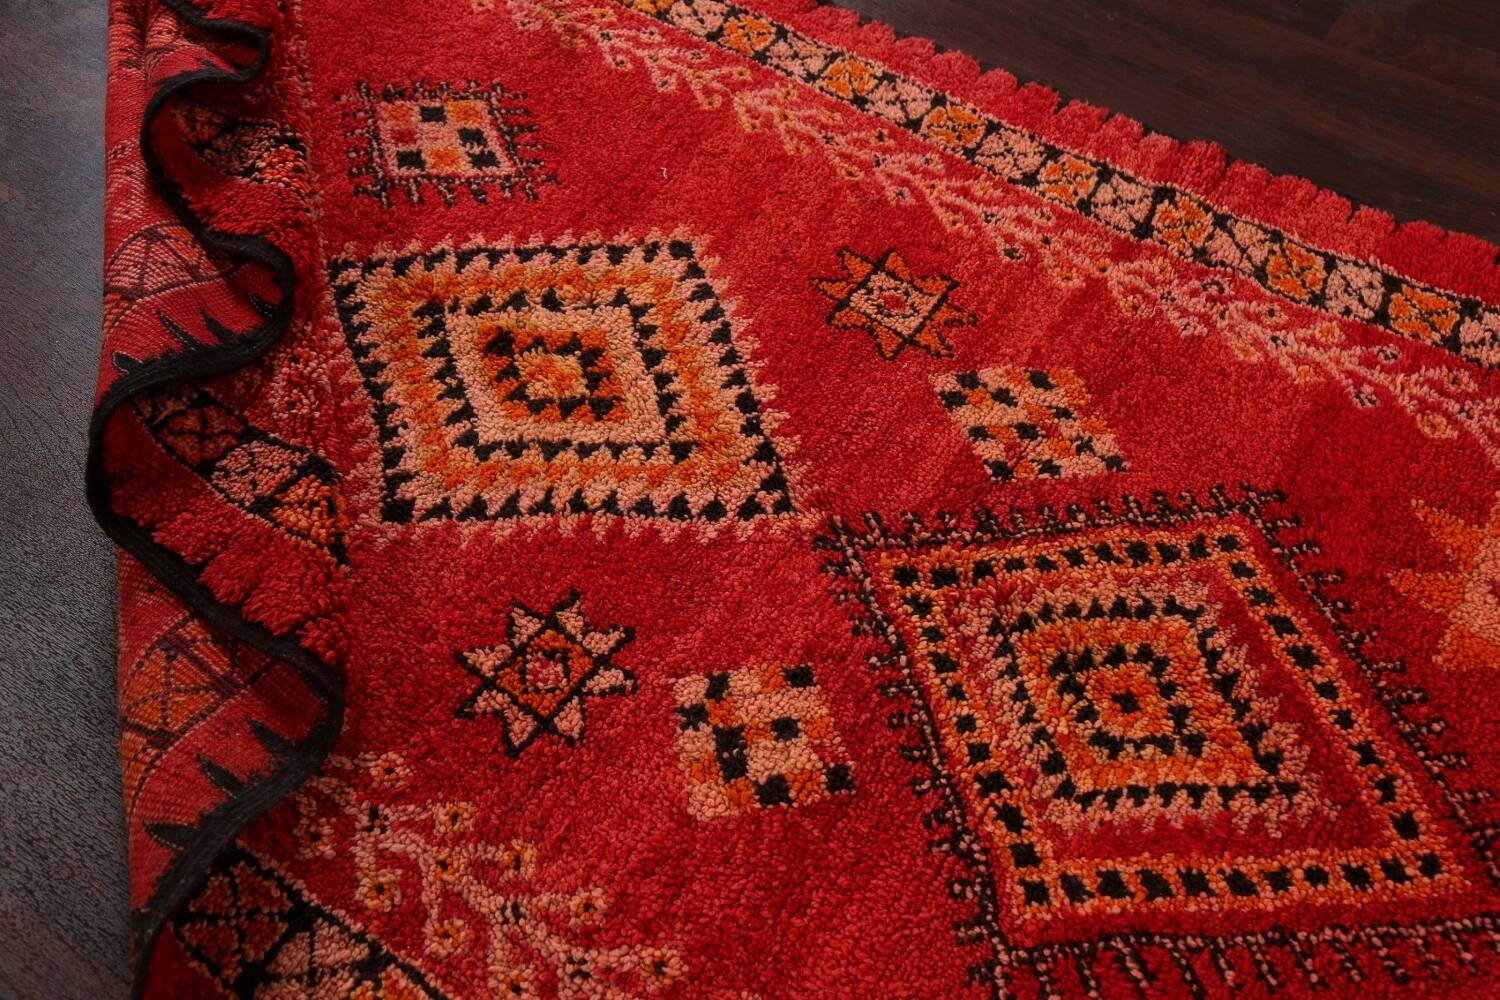 Red Moroccan Berber Area Rug 6x11 image 22